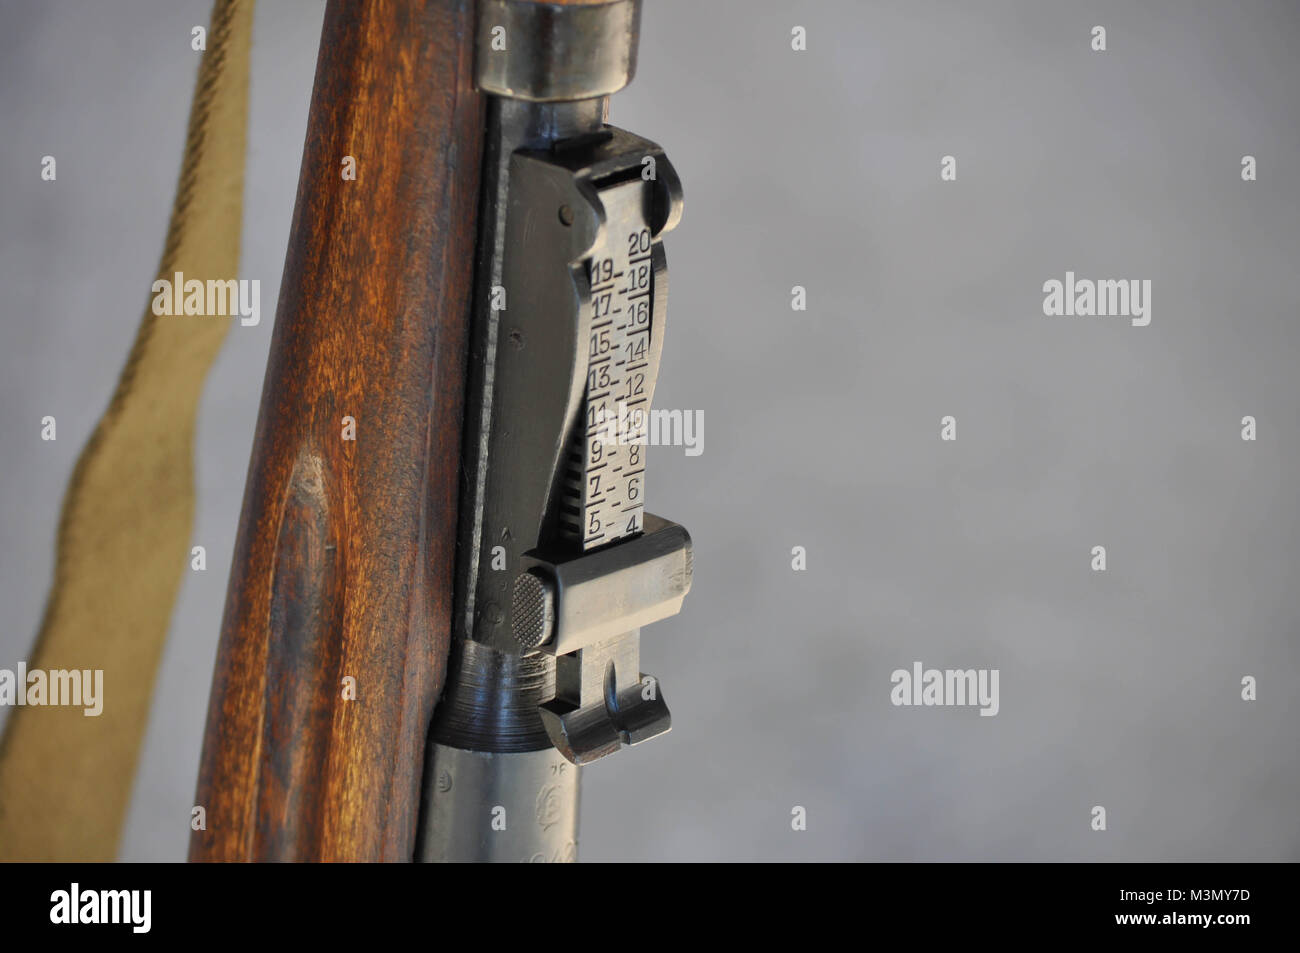 Mosin Nagant Stock Photos Images Alamy Gun Schematic Iron Sight Distance Scale On A Rifle Image